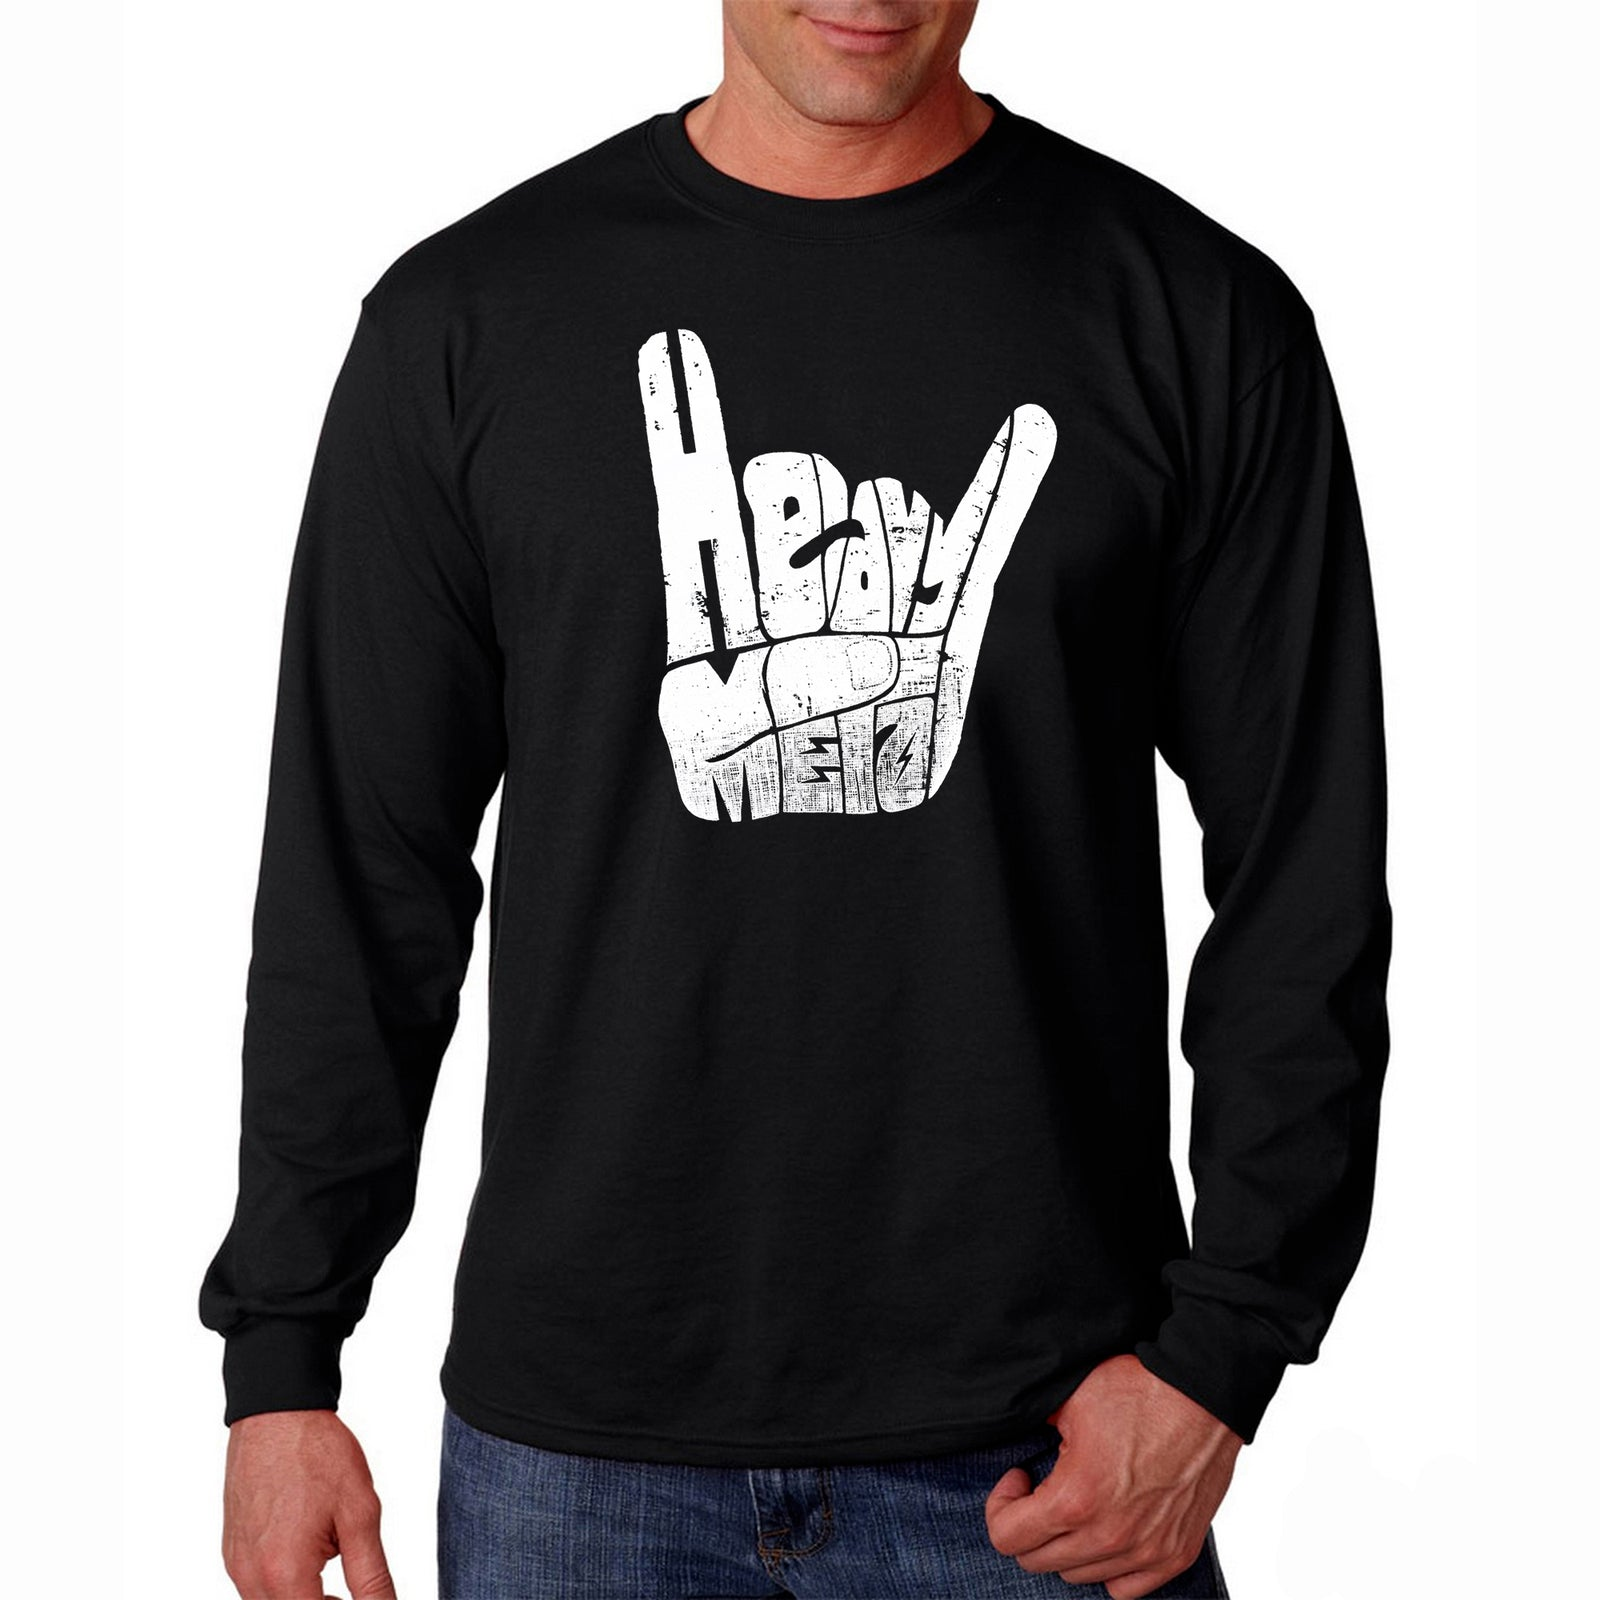 Men's Long Sleeve T-shirt - Heavy Metal